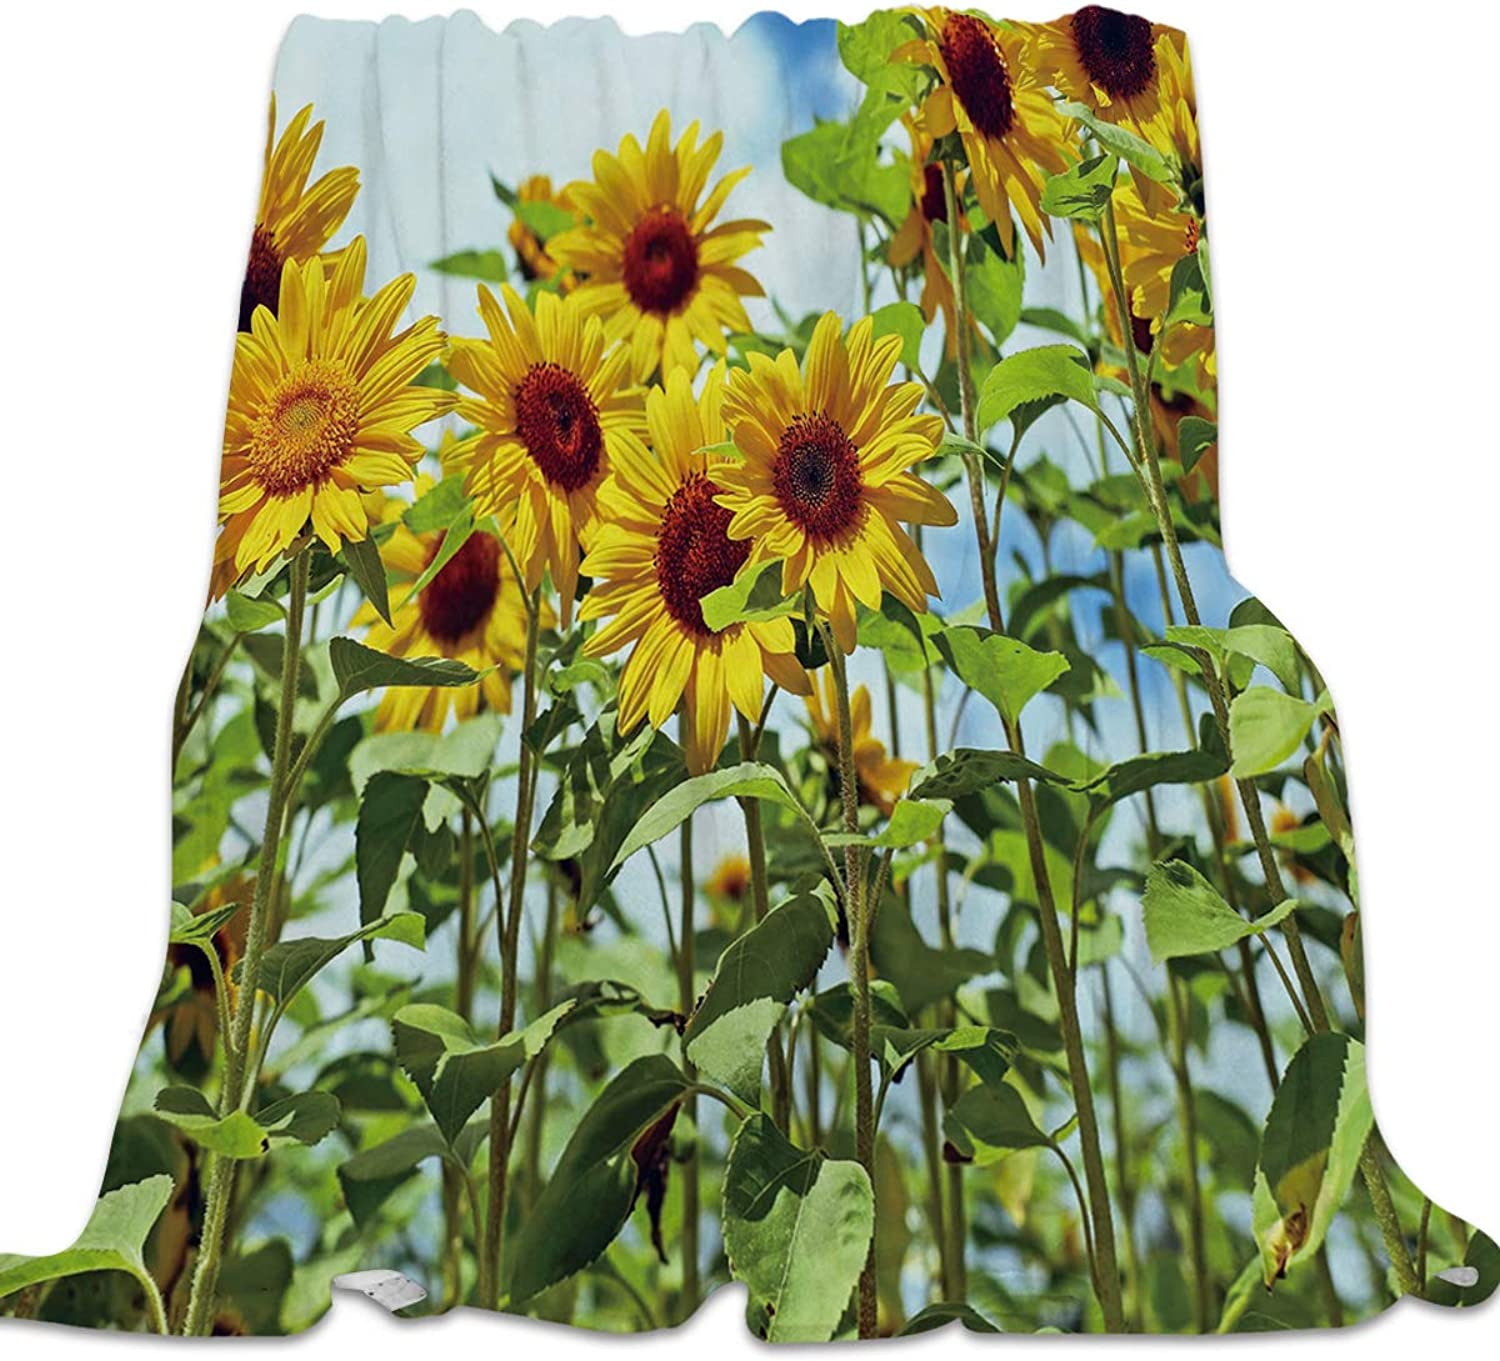 39x49 Inch Flannel Fleece Bed Blanket Soft Throw-Blankets for Girls Boys,3D colorful Flowers Sunflower Pattern,Lightweight Warm Kids Blankets for Bedroom Living Room Sofa Couch Home Decor